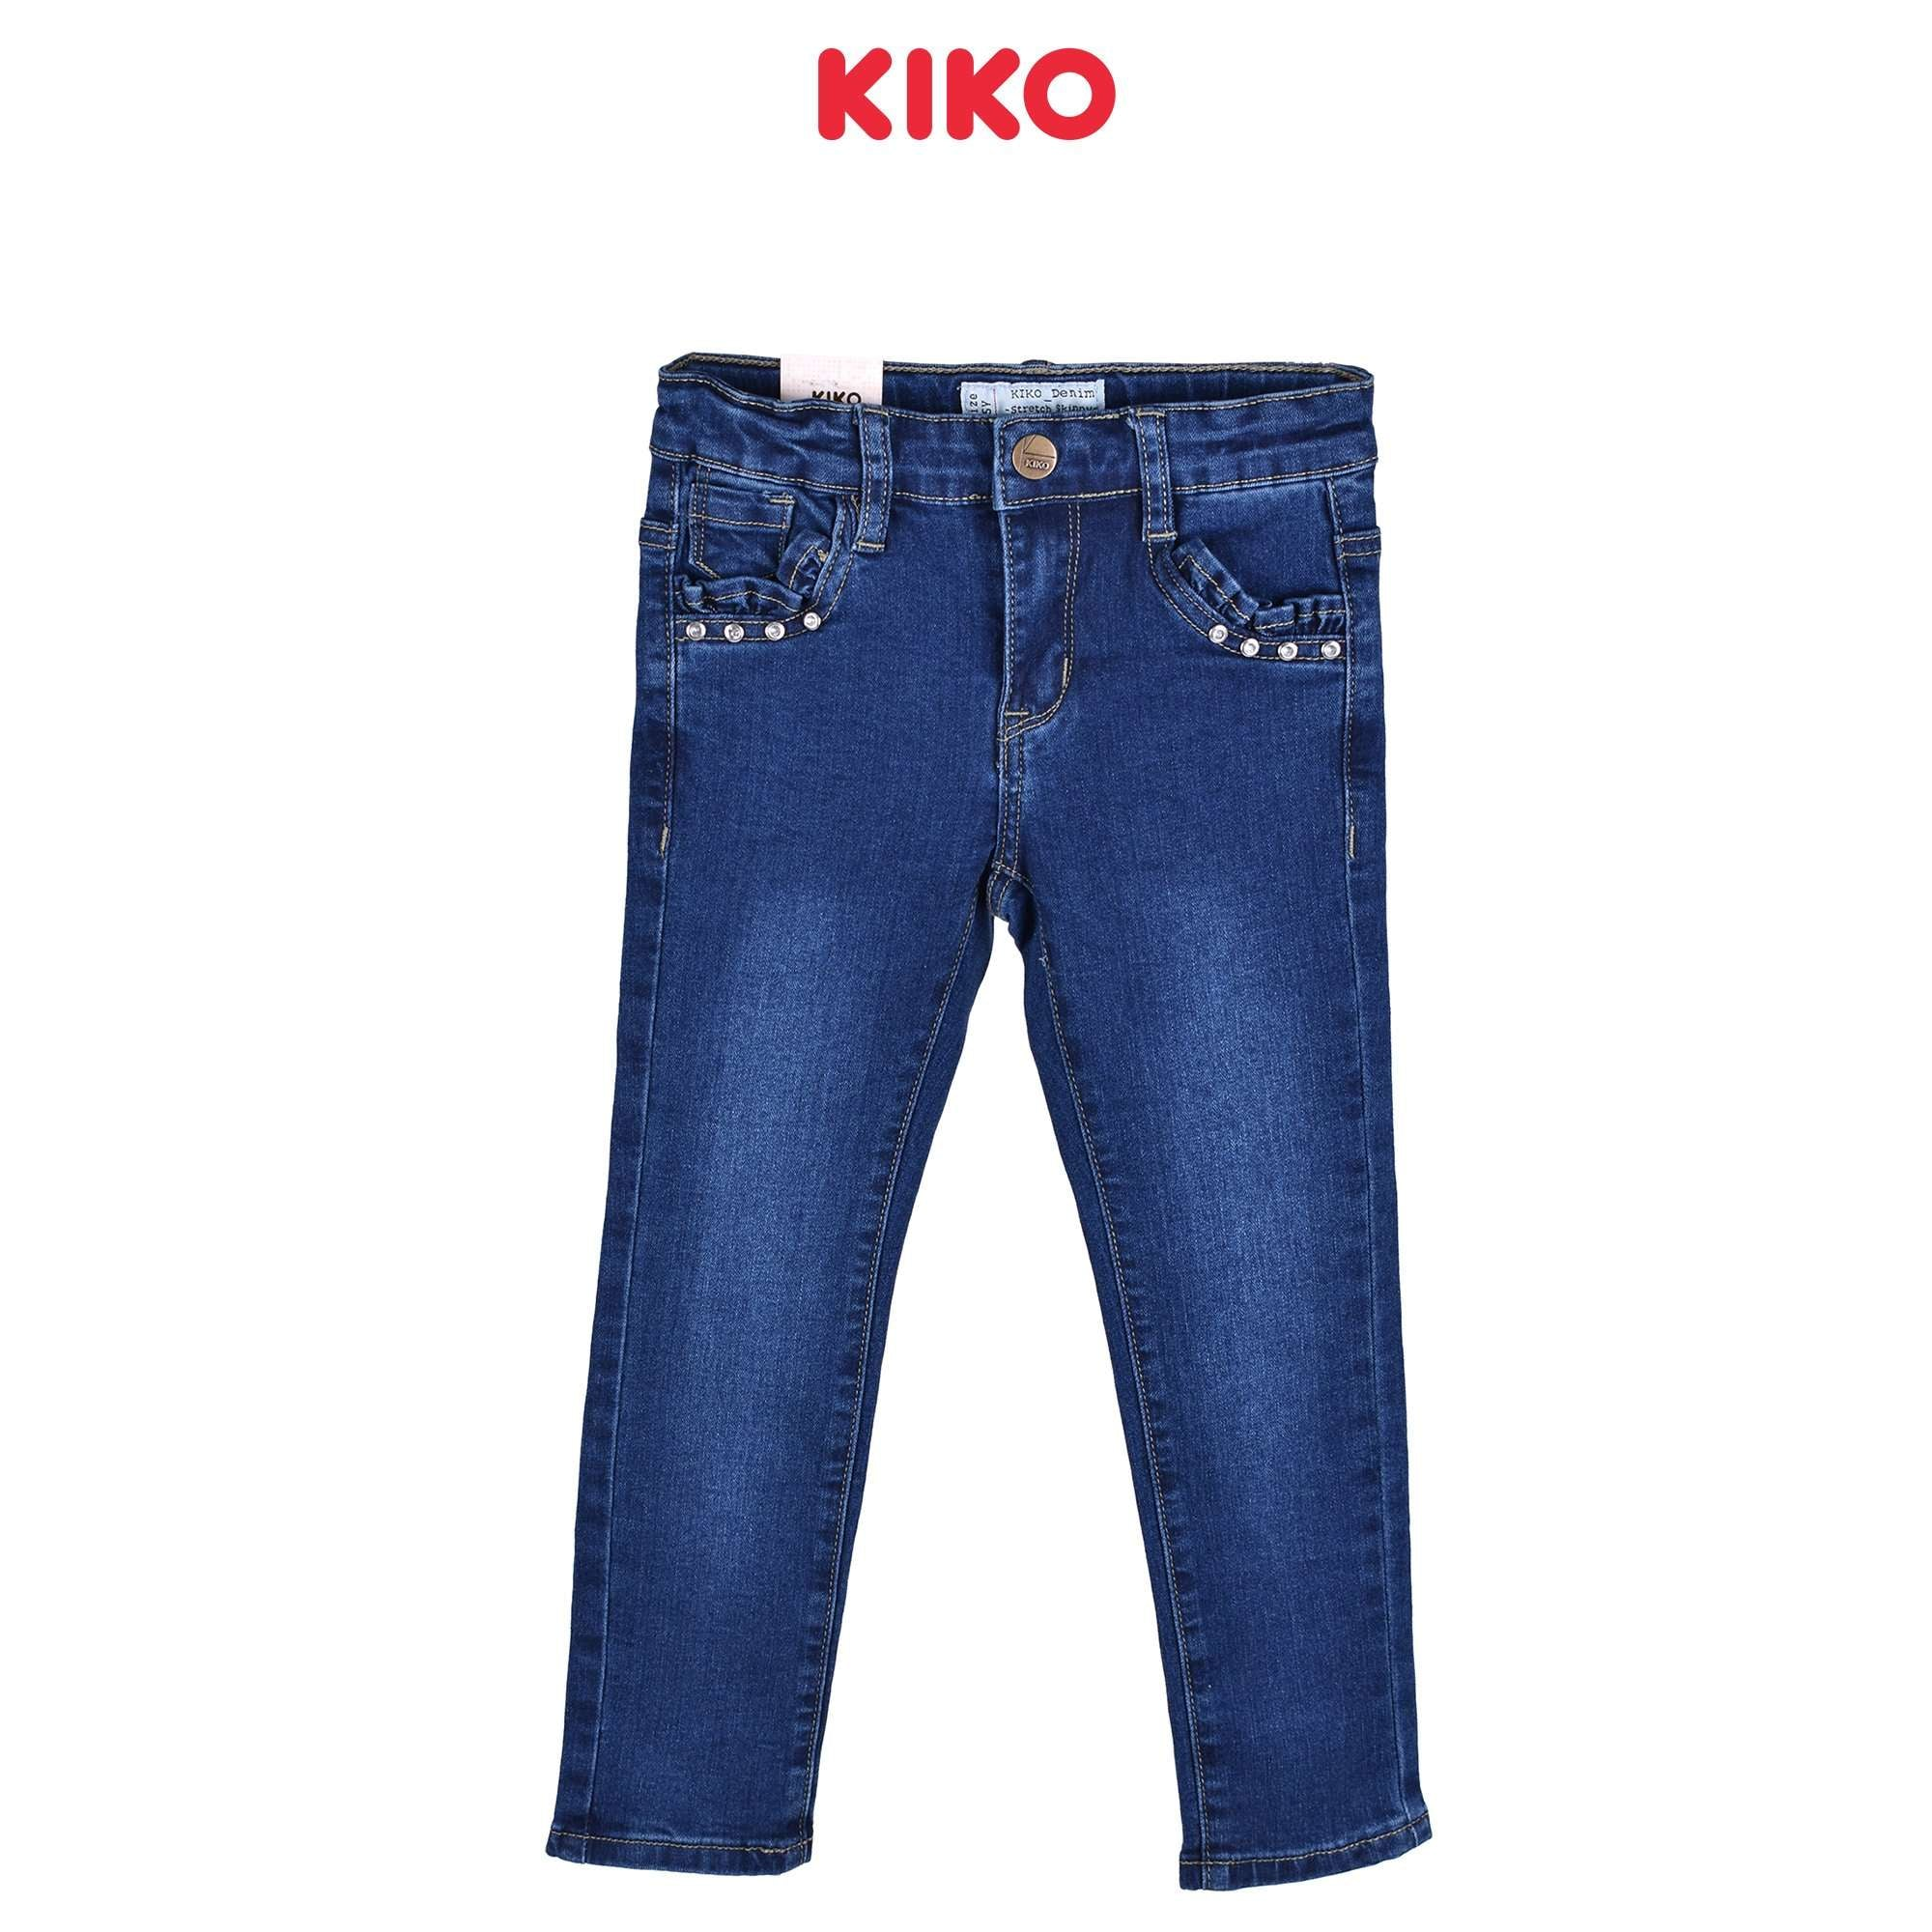 KIKO Girl Jeans Skinny Fit - Blue 135063-211 : Buy KIKO online at CMG.MY